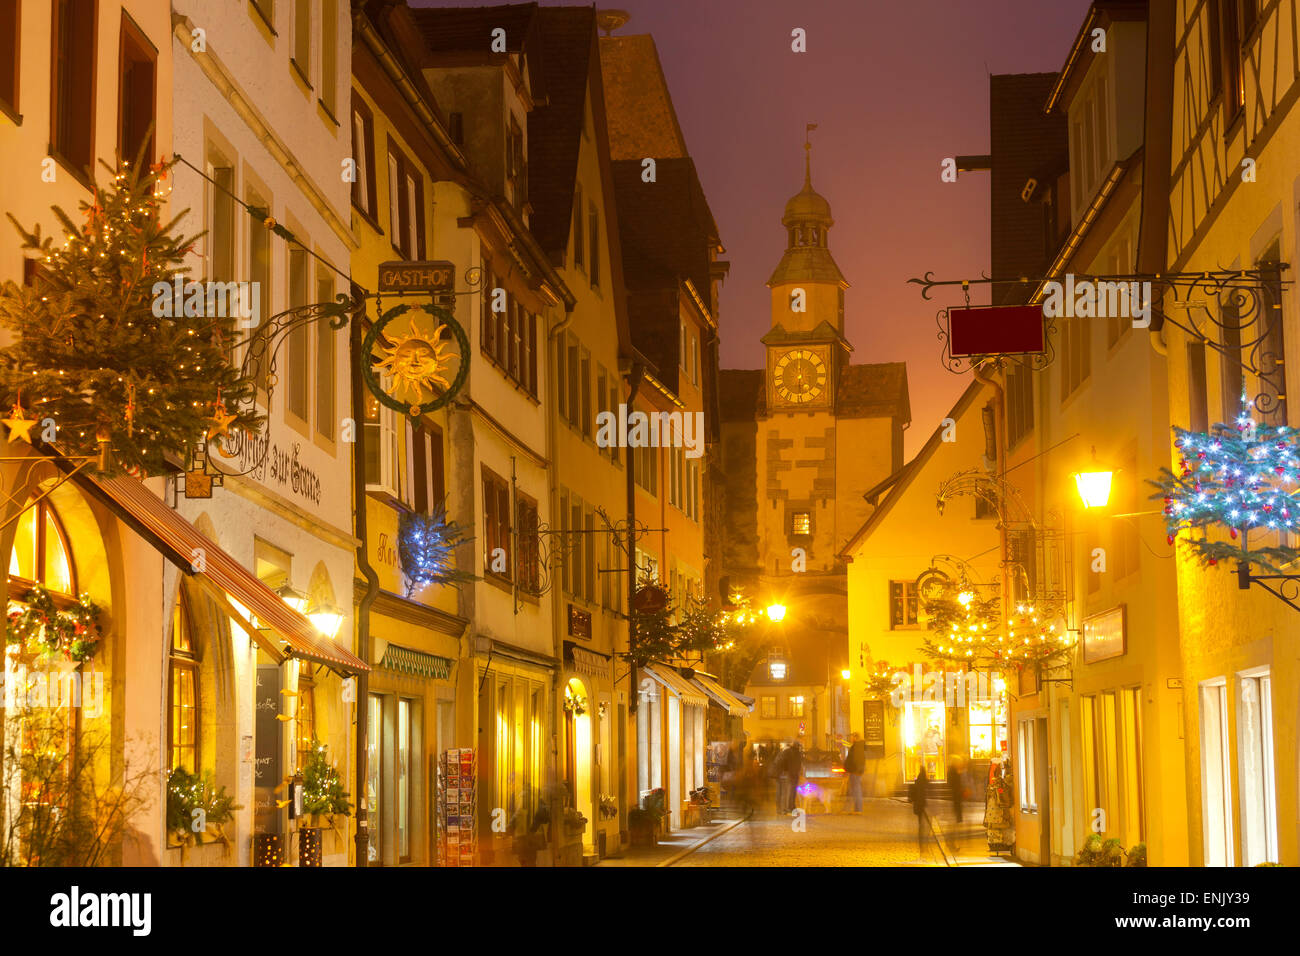 Hafengasse Street and the Markusturm at Christmas, Rothenburg ob der Tauber, Bavaria, Germany, Europe Stock Photo